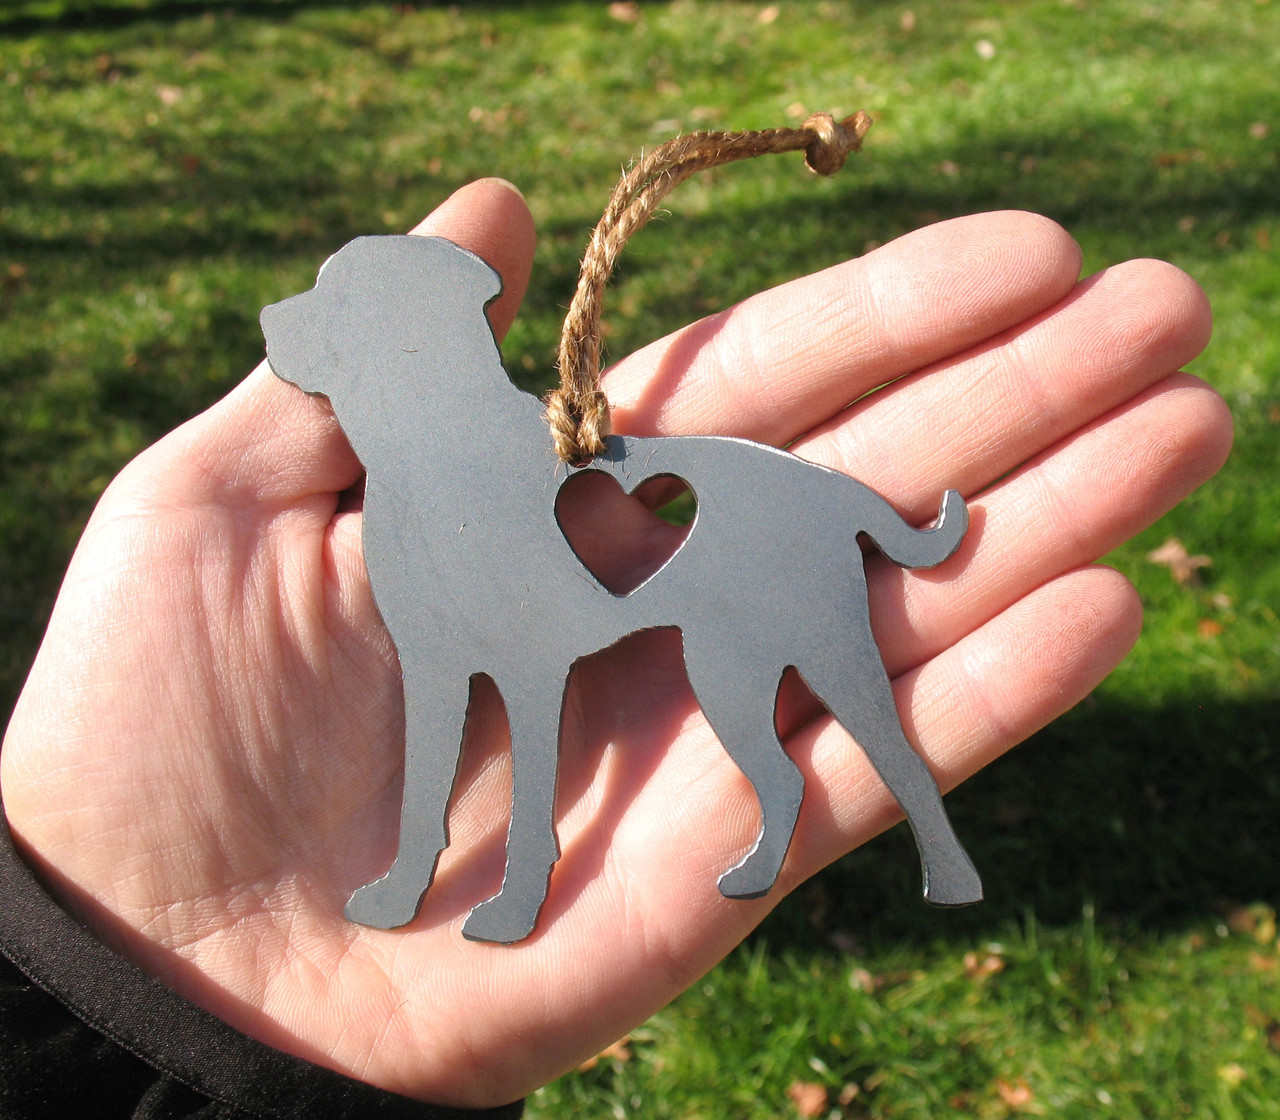 Greater Swiss Mountain Dog Pet Loss Gift Ornament - Pet Memorial - Dog Sympathy Remembrance Gift - Metal Dog Christmas Ornament